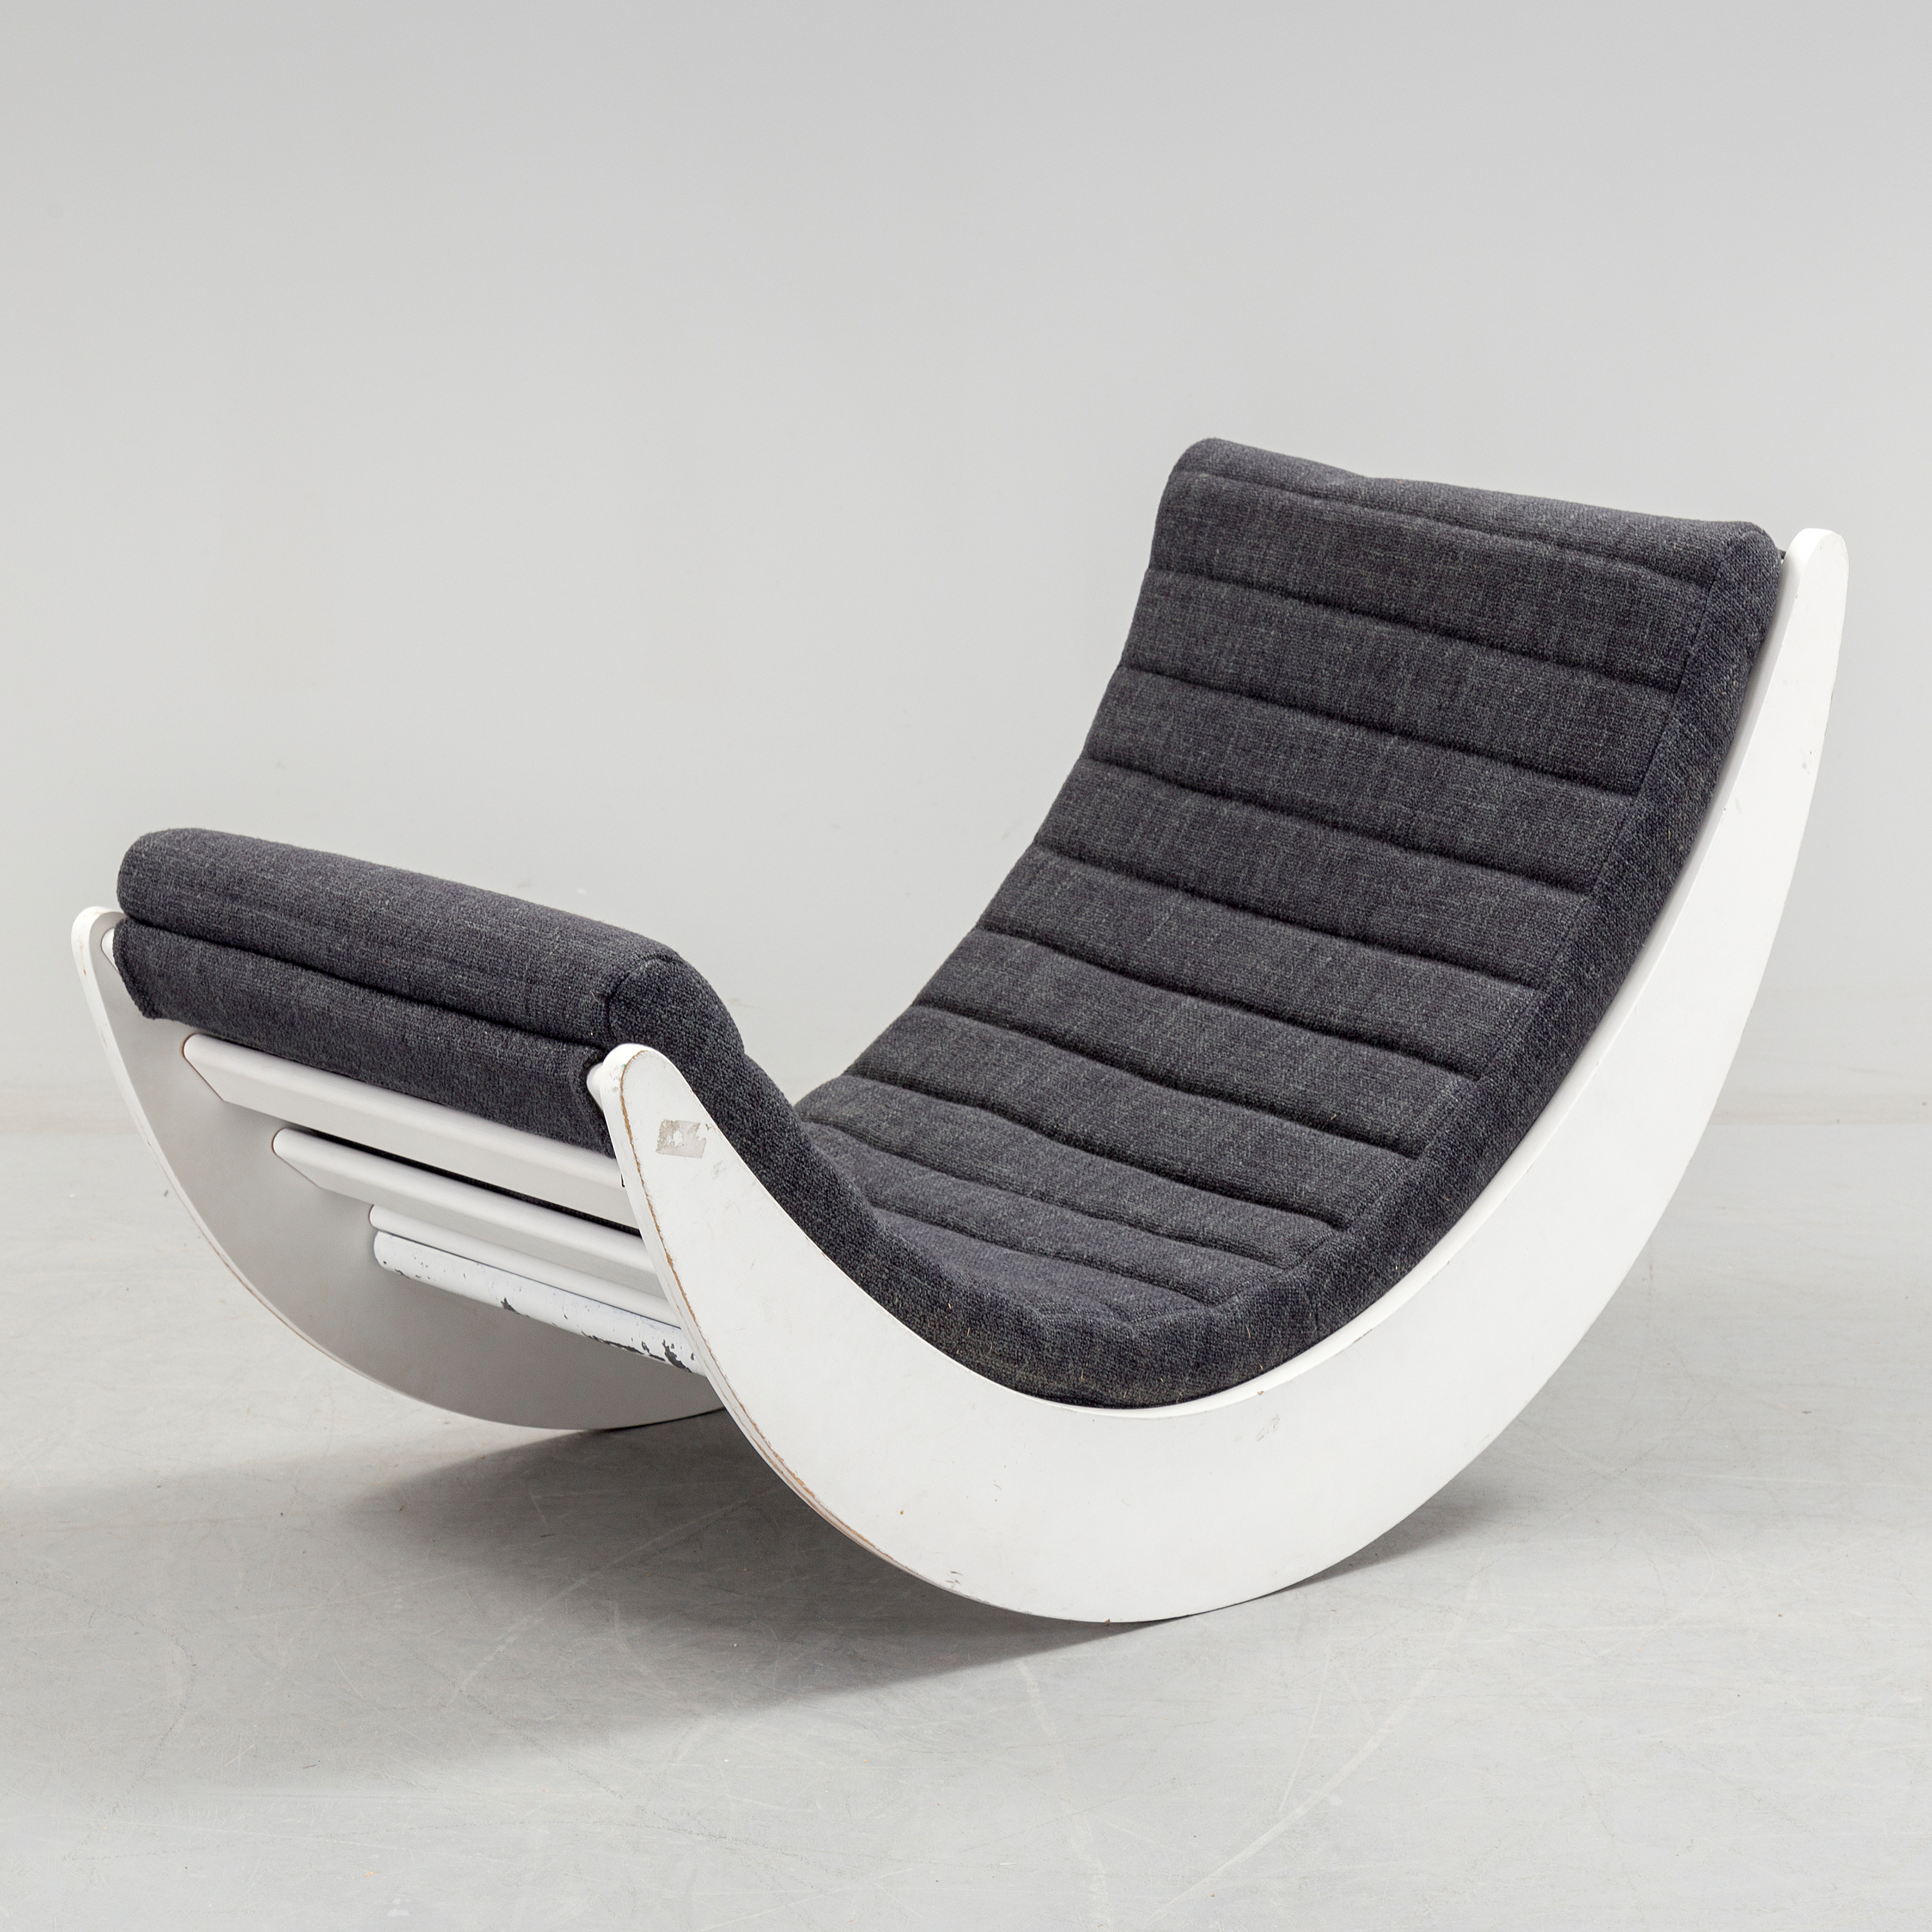 verner panton a verner panton relaxer 2 rocking chair from